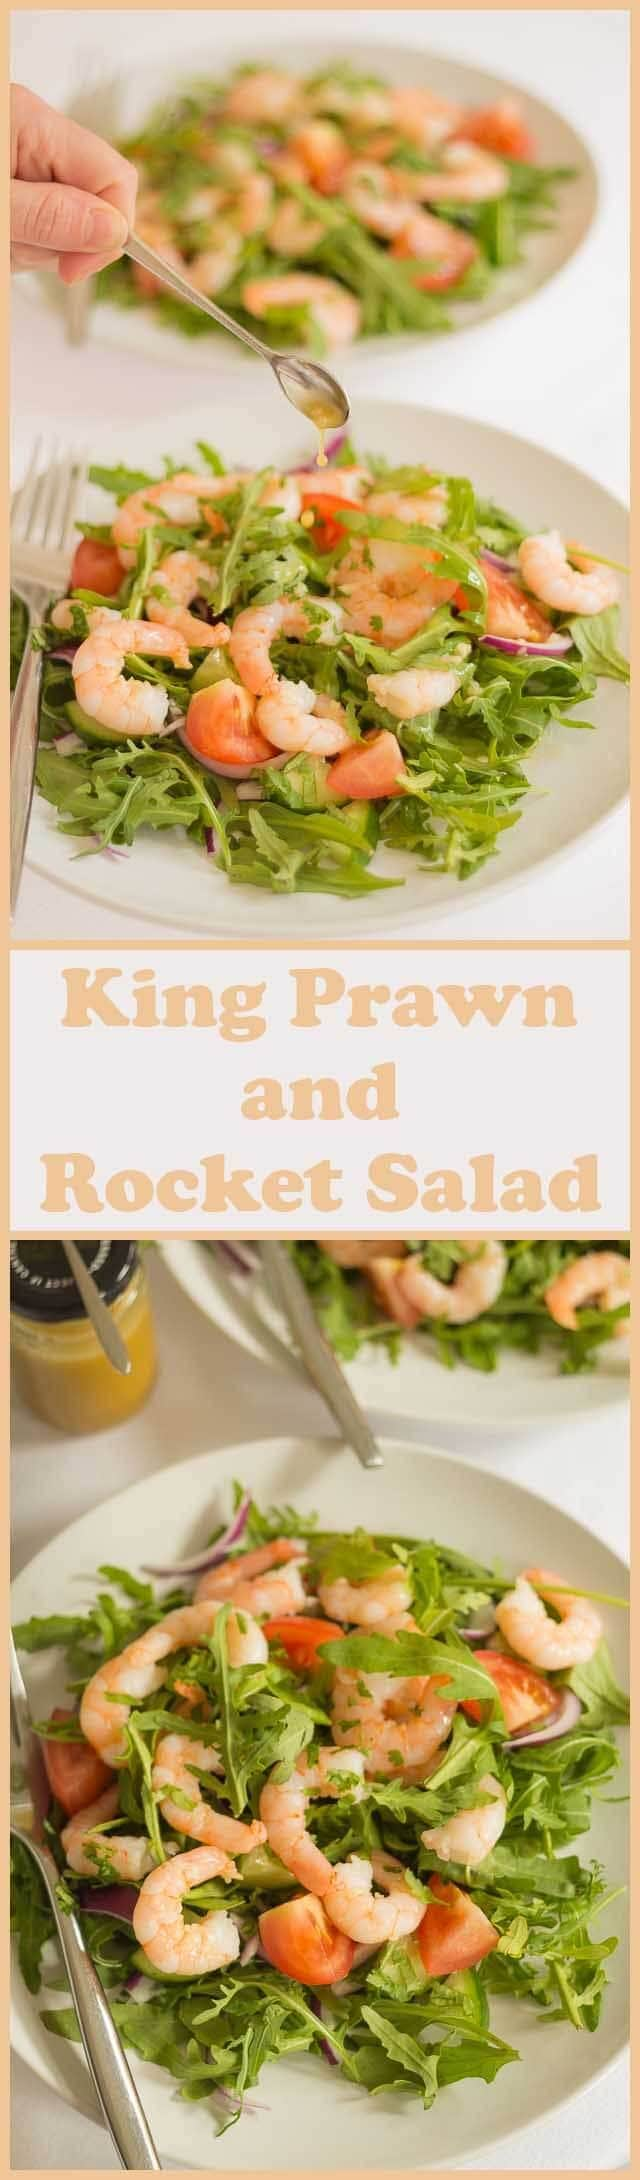 You'll love this king prawn and rocket salad recipe, which has a delicious lime and soy dressing bursting with flavour. There's plenty of nutritional goodness here to brighten up any dull lunchtime or dinner. This is one salad you'll not want to put down once you've started it!